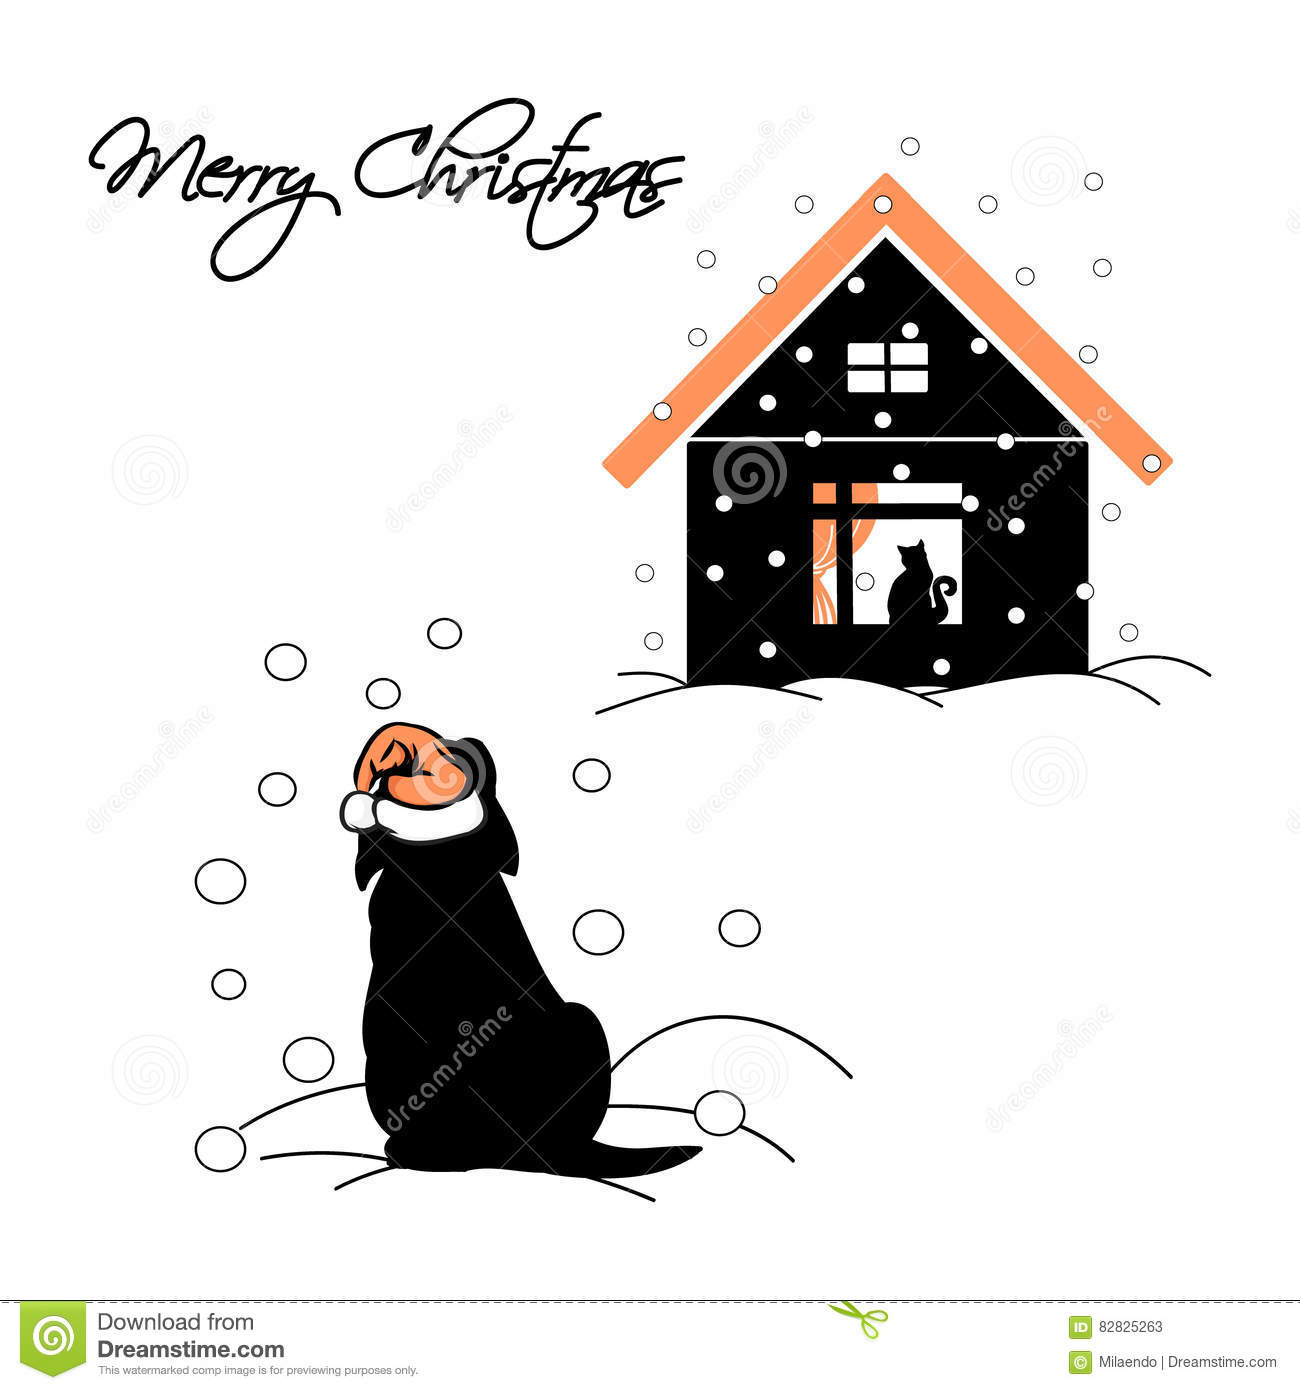 The Puppy In The Santa Hat In The Snow Cartoon Vector